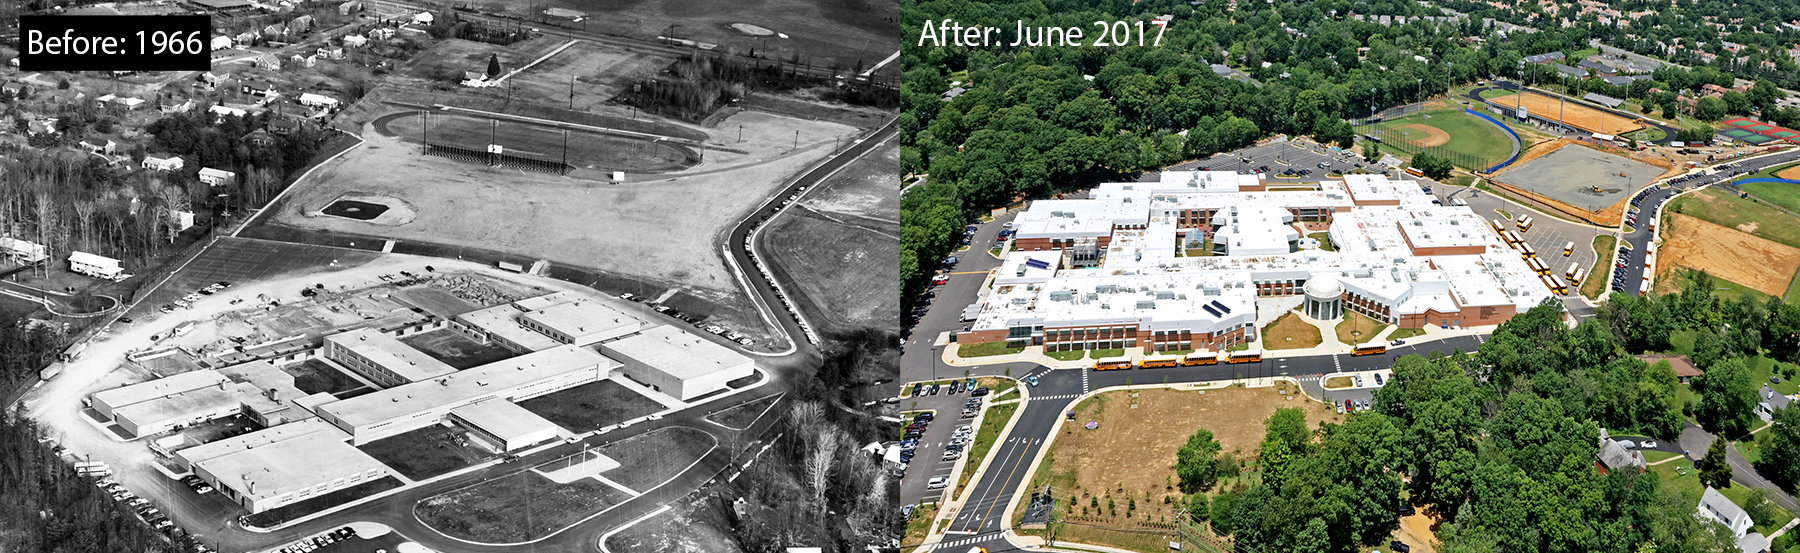 areal photo of TJ in 1966 on the left and in 2017 on the right